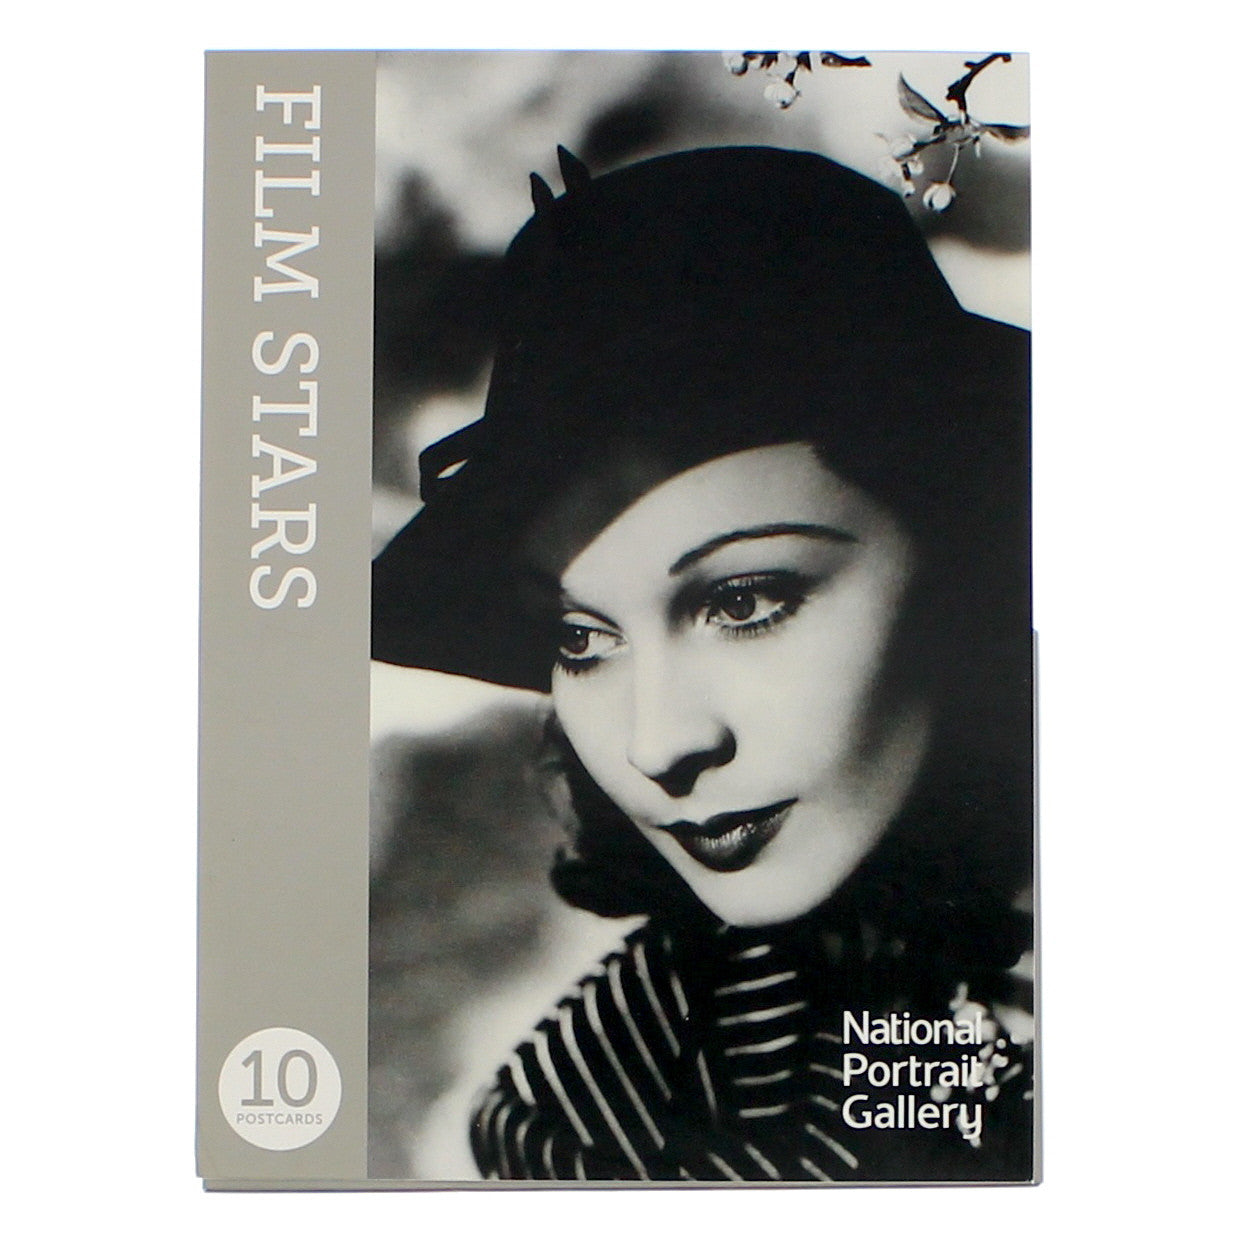 Film Stars Postcard Pack